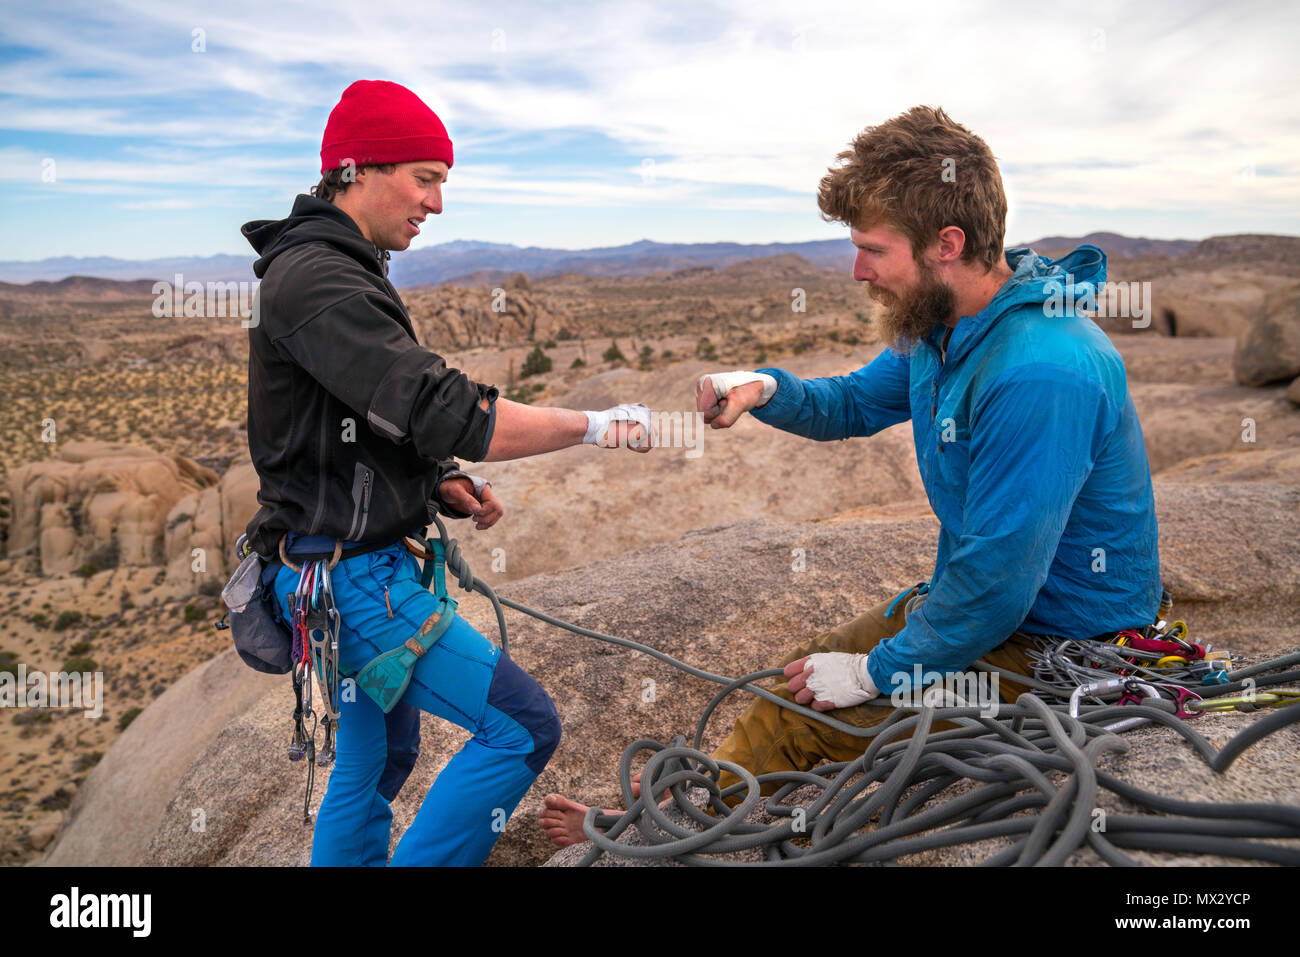 Fist pump after finishing a climb in Joshua Tree National Park. - Stock Image